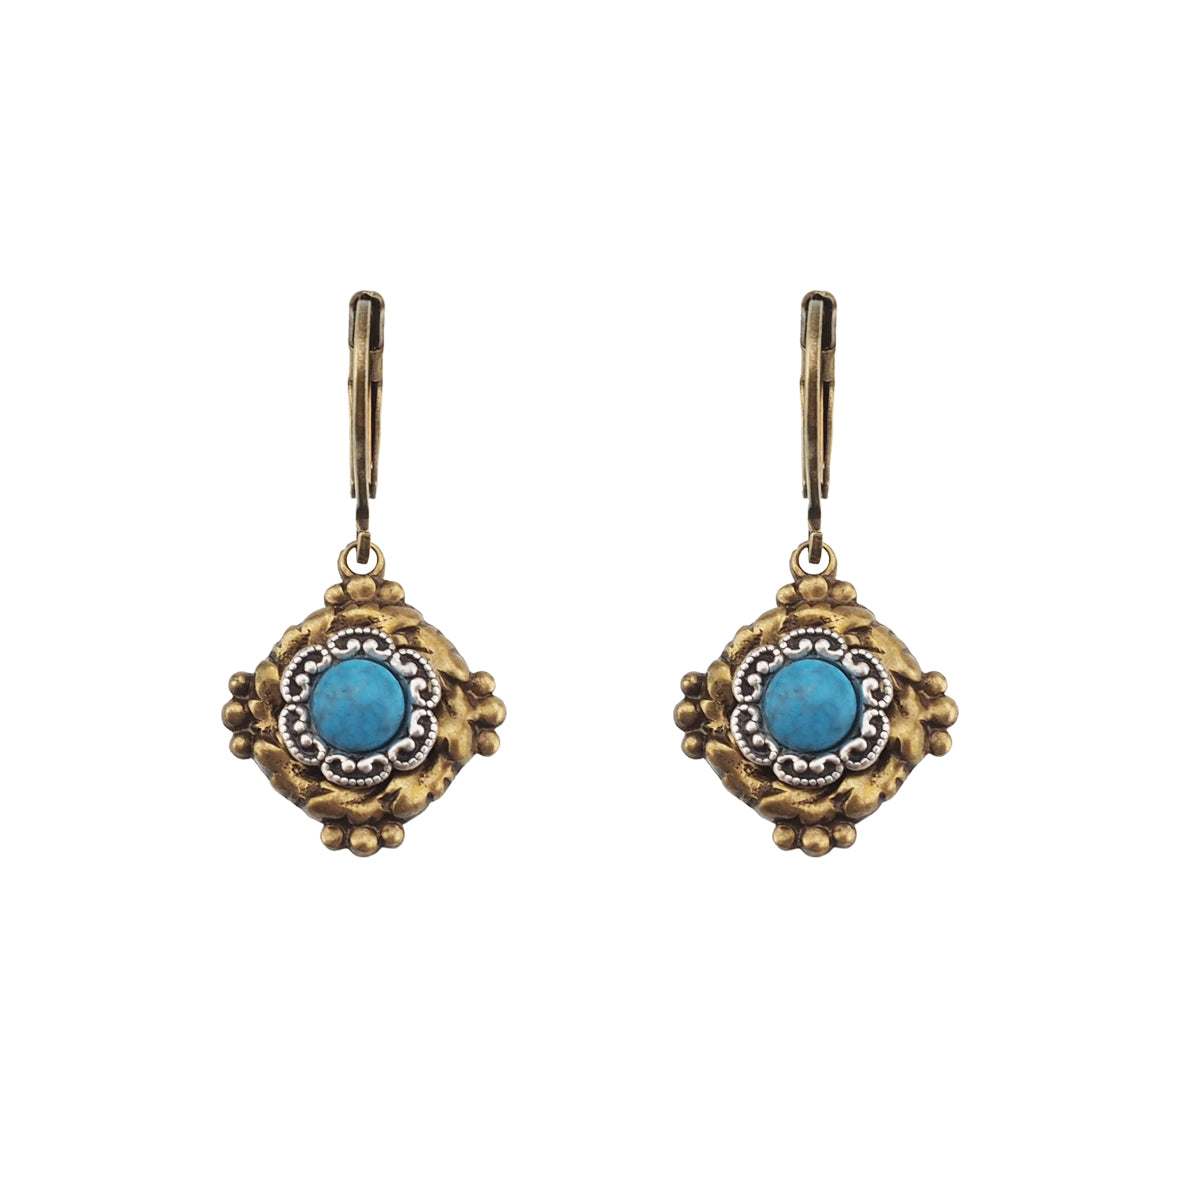 Vintage Vibes Earrings - Turquoise